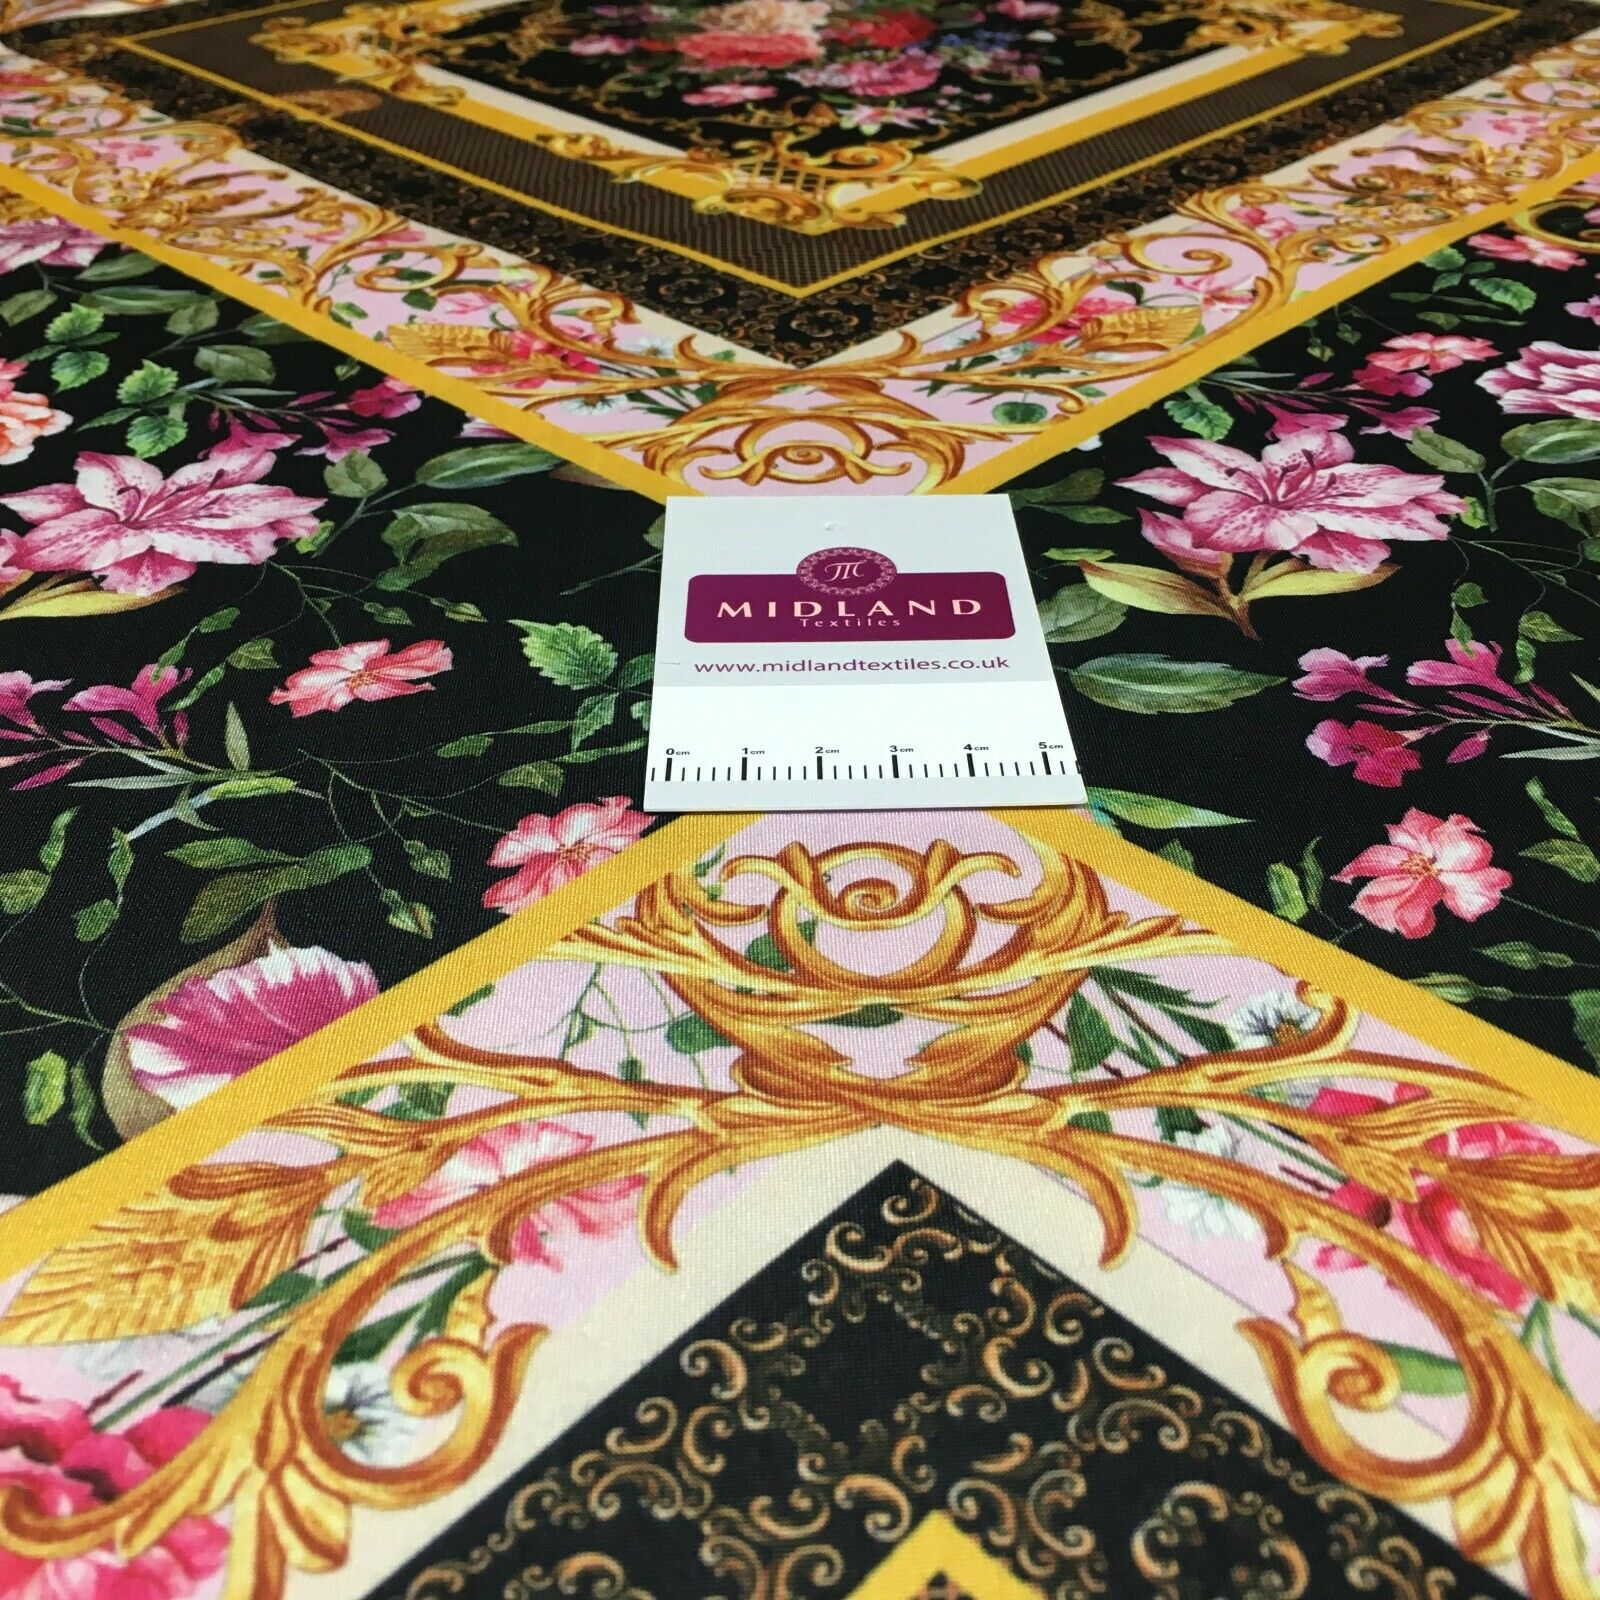 Black Floral ornamental ity soft touch jersey dress Fabric M1525